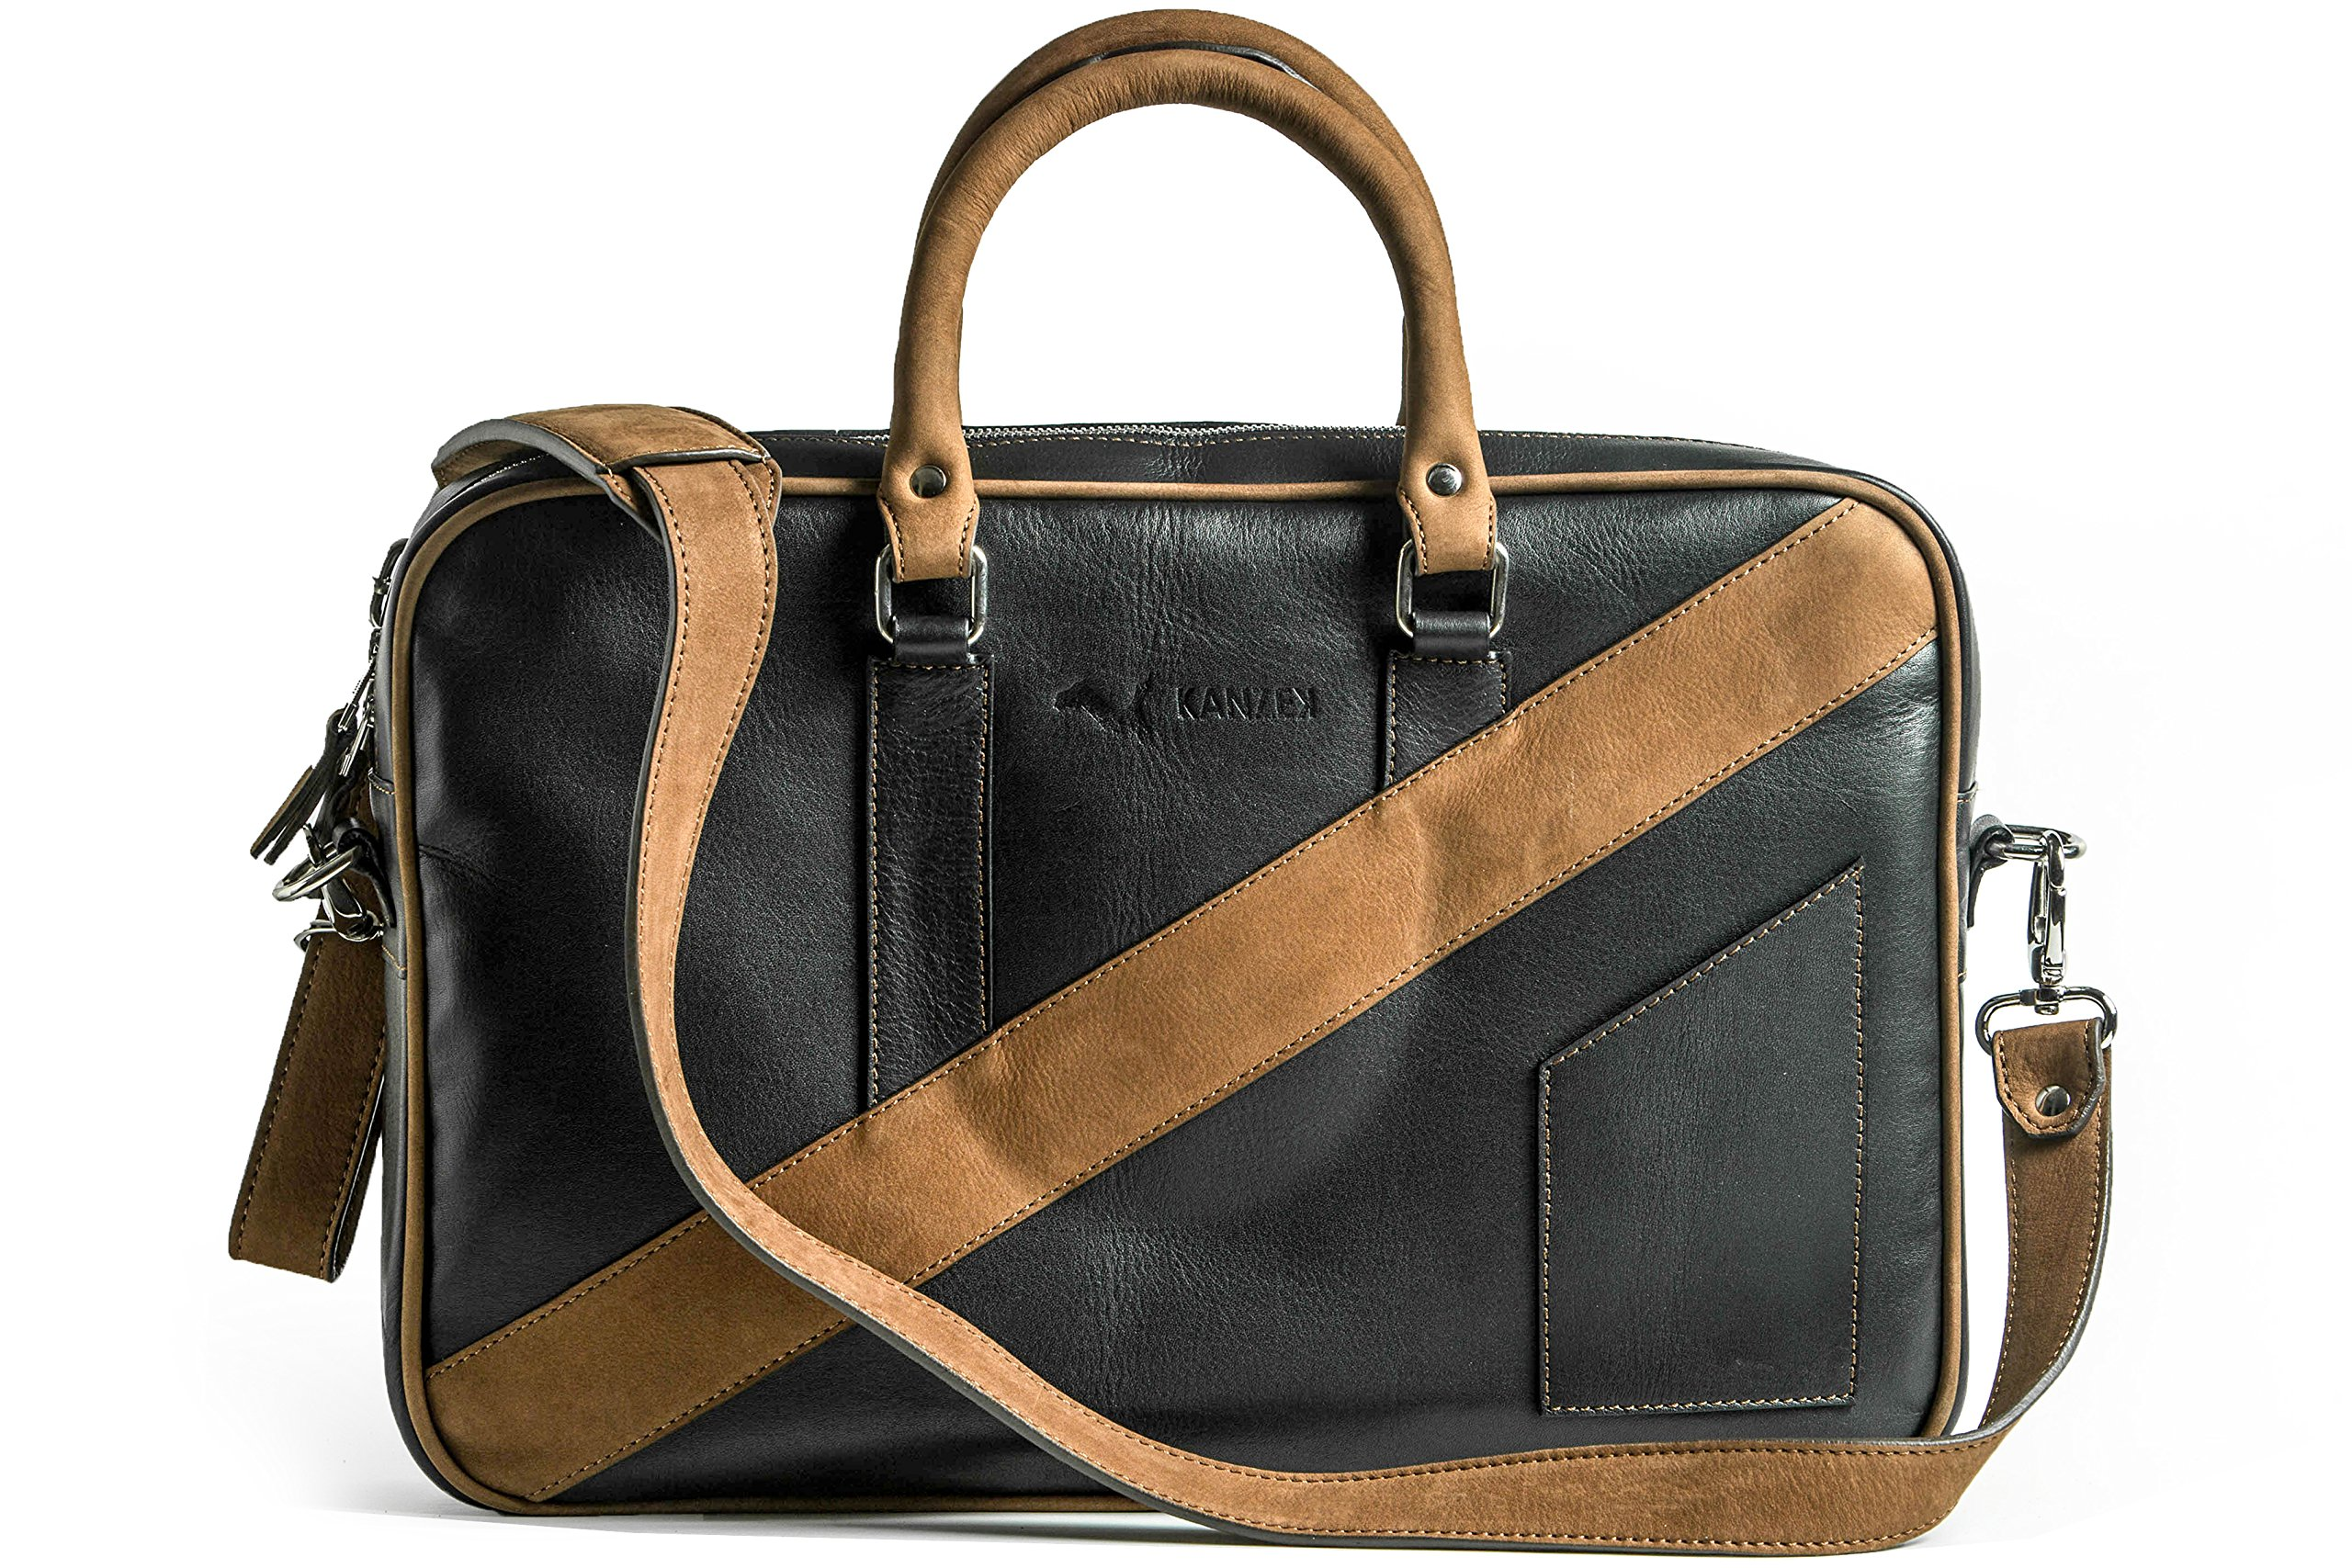 KANZEK Black and Brown Full Grain Leather Laptop Messenger Briefcase / Shoulder Bag, 15.6'' Computers, Light and Professional. Premium Materials and Design, Luxury Metal Zippers - Men's and Women's by KANZEK